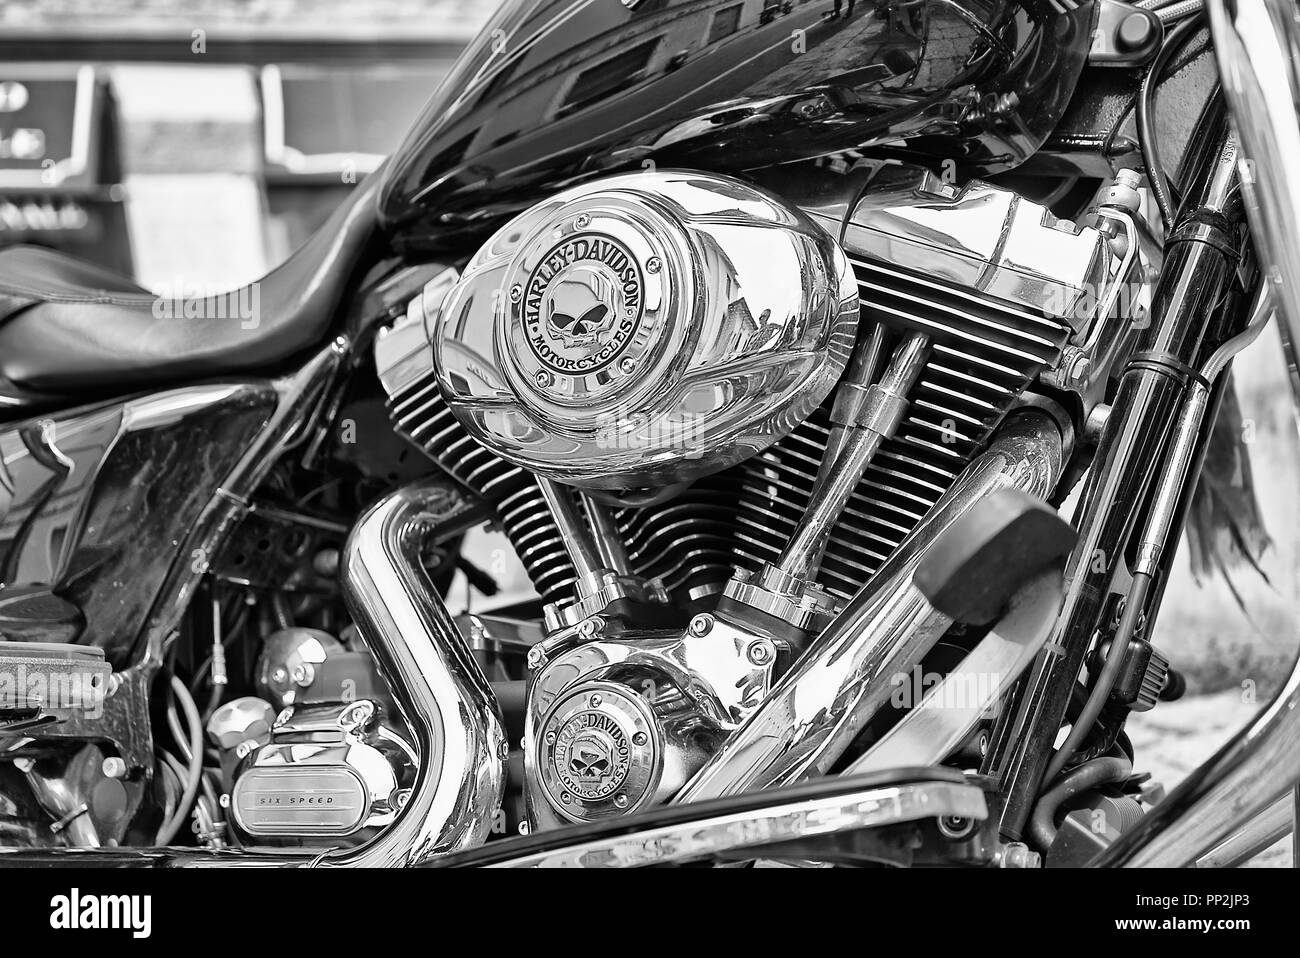 Old Shows Road Stock Photos & Old Shows Road Stock Images - Alamy